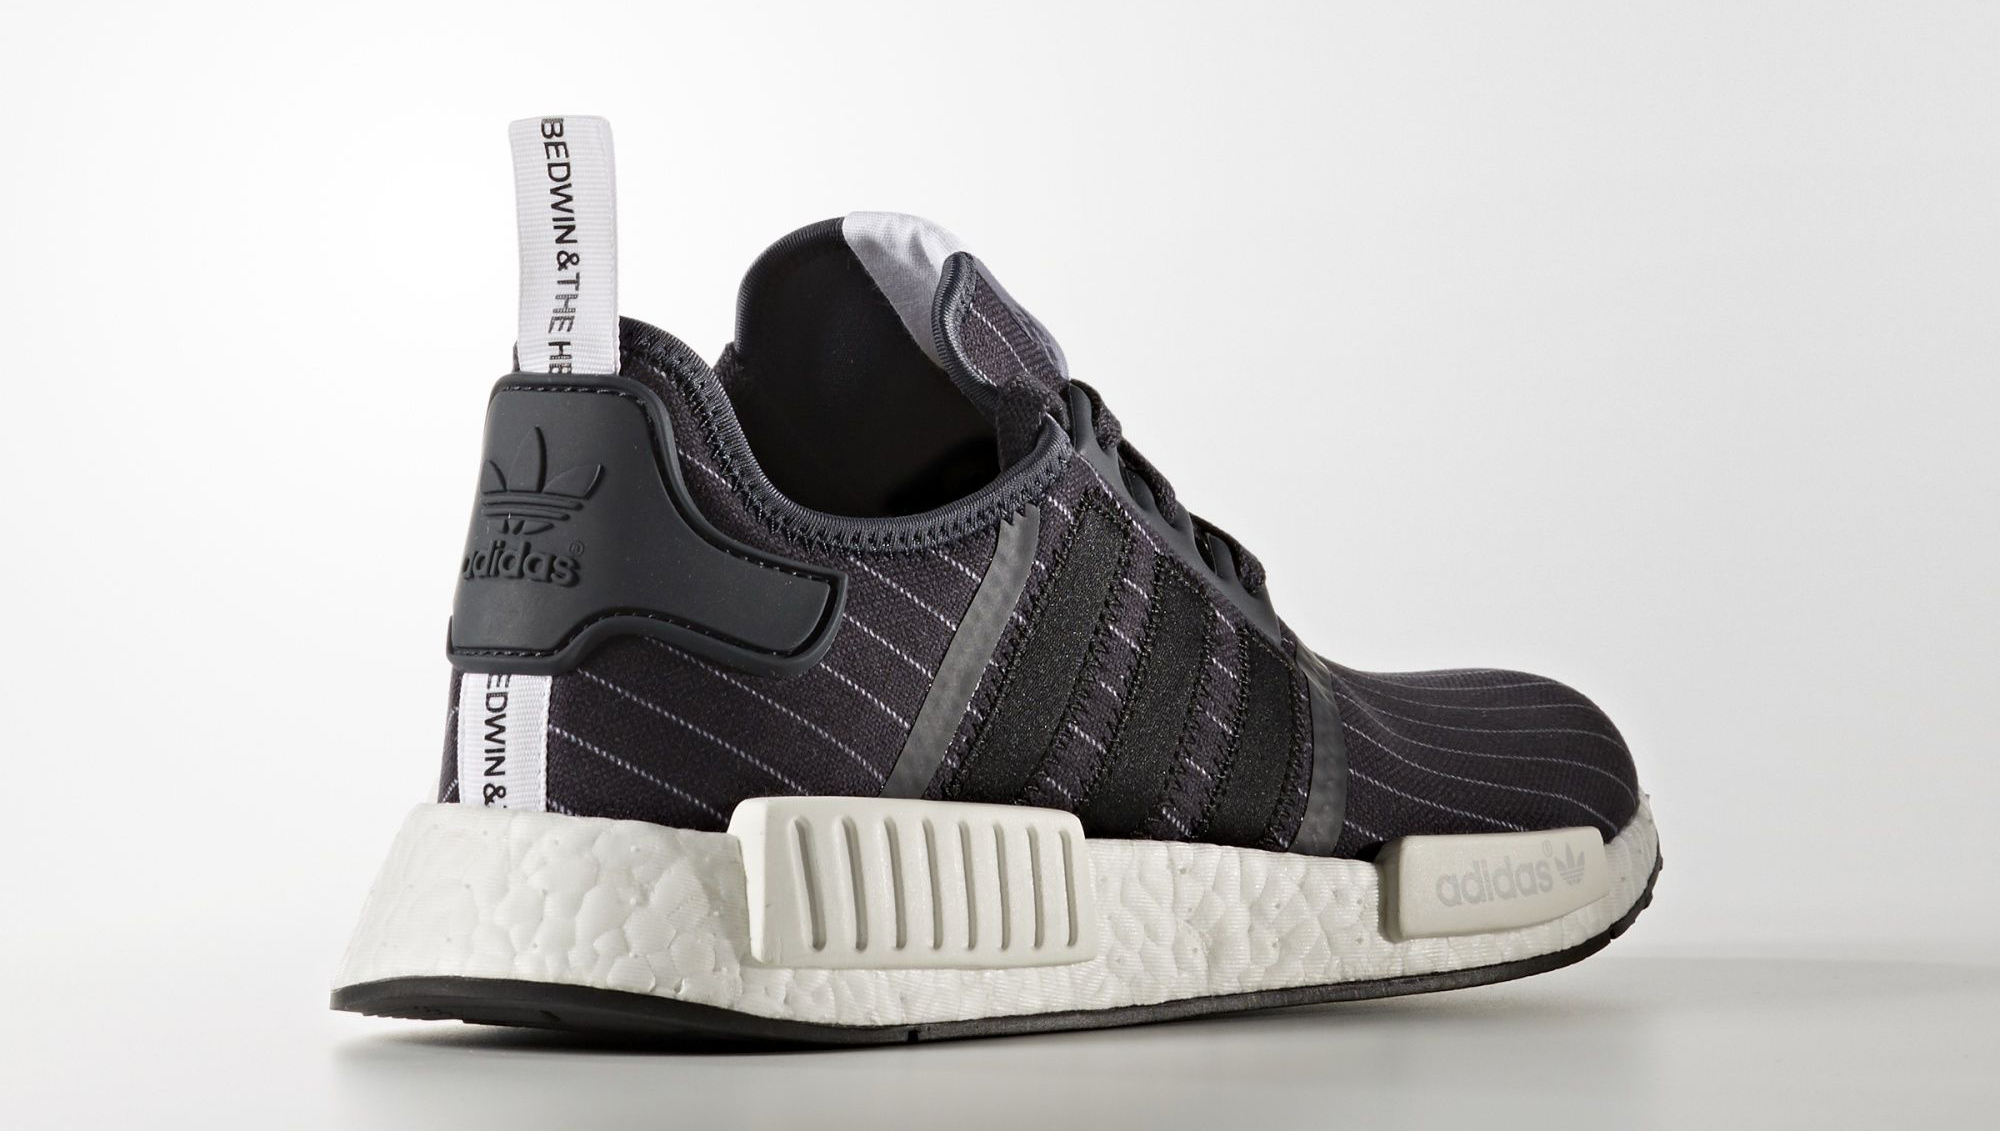 new styles 379e6 04d63 Bapes Arent the Only NMD Collab This Month. Bedwin  The Heartbreakers ...